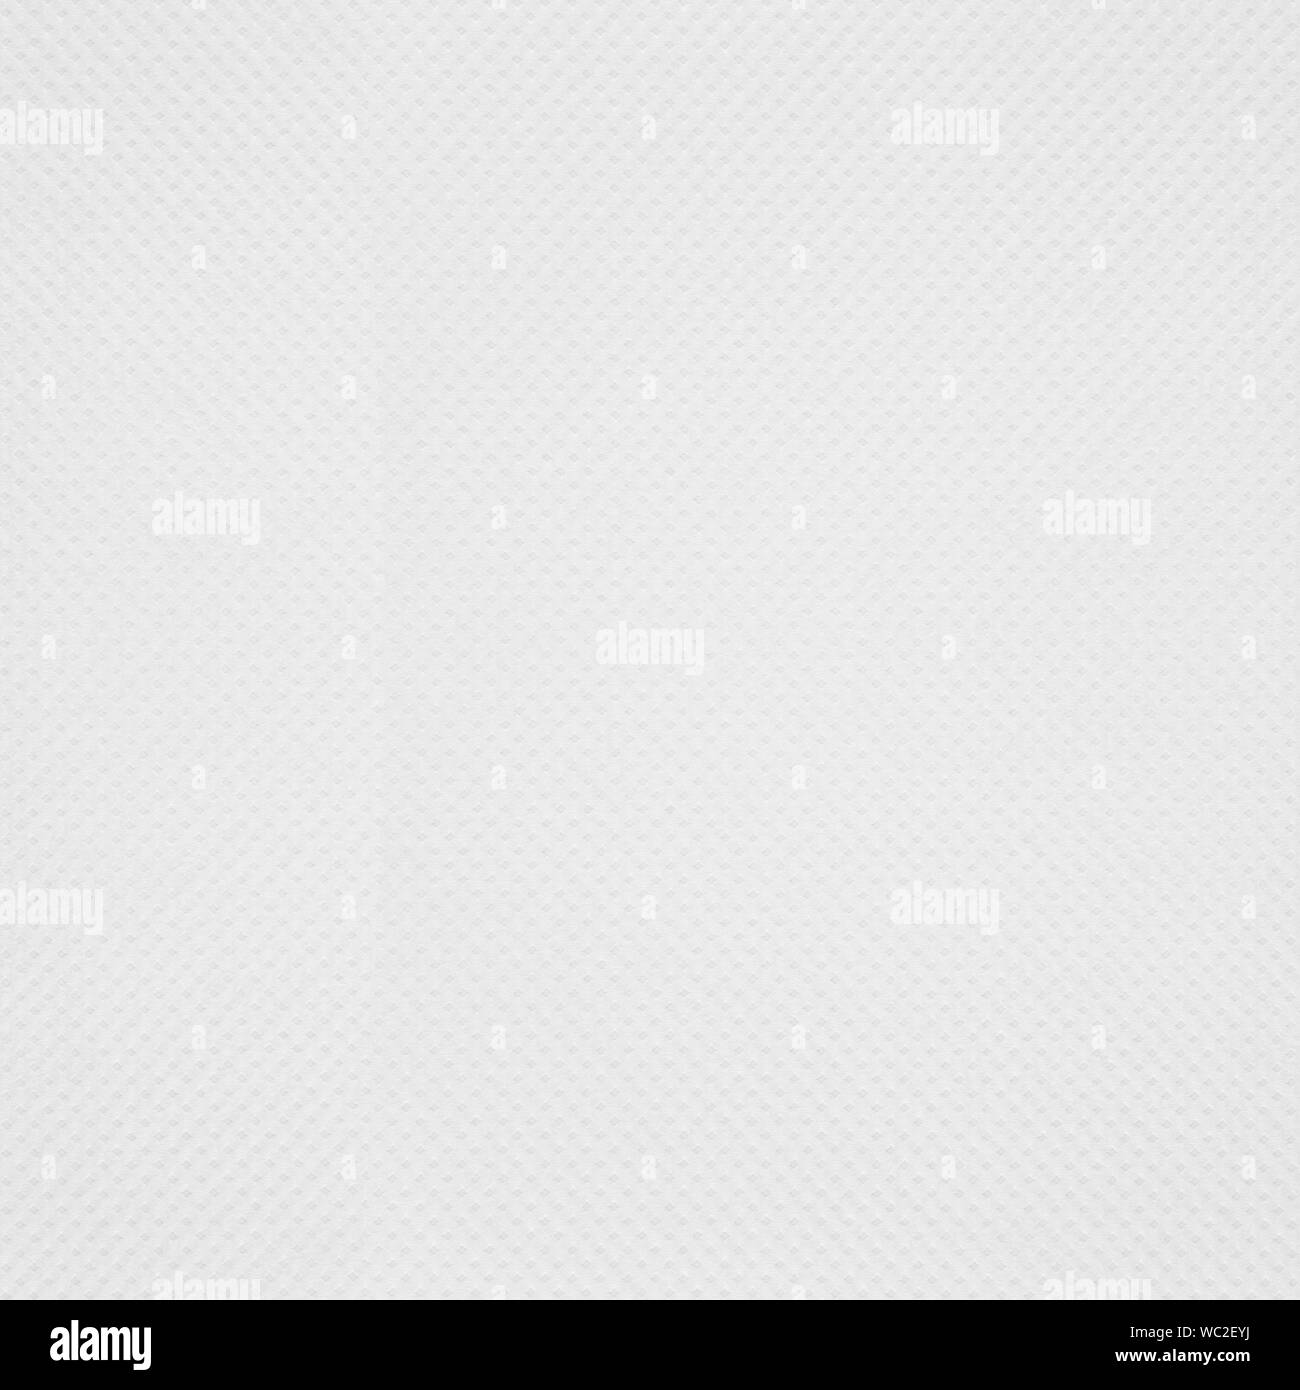 white paper texture or soft grain pattern background Stock Photo